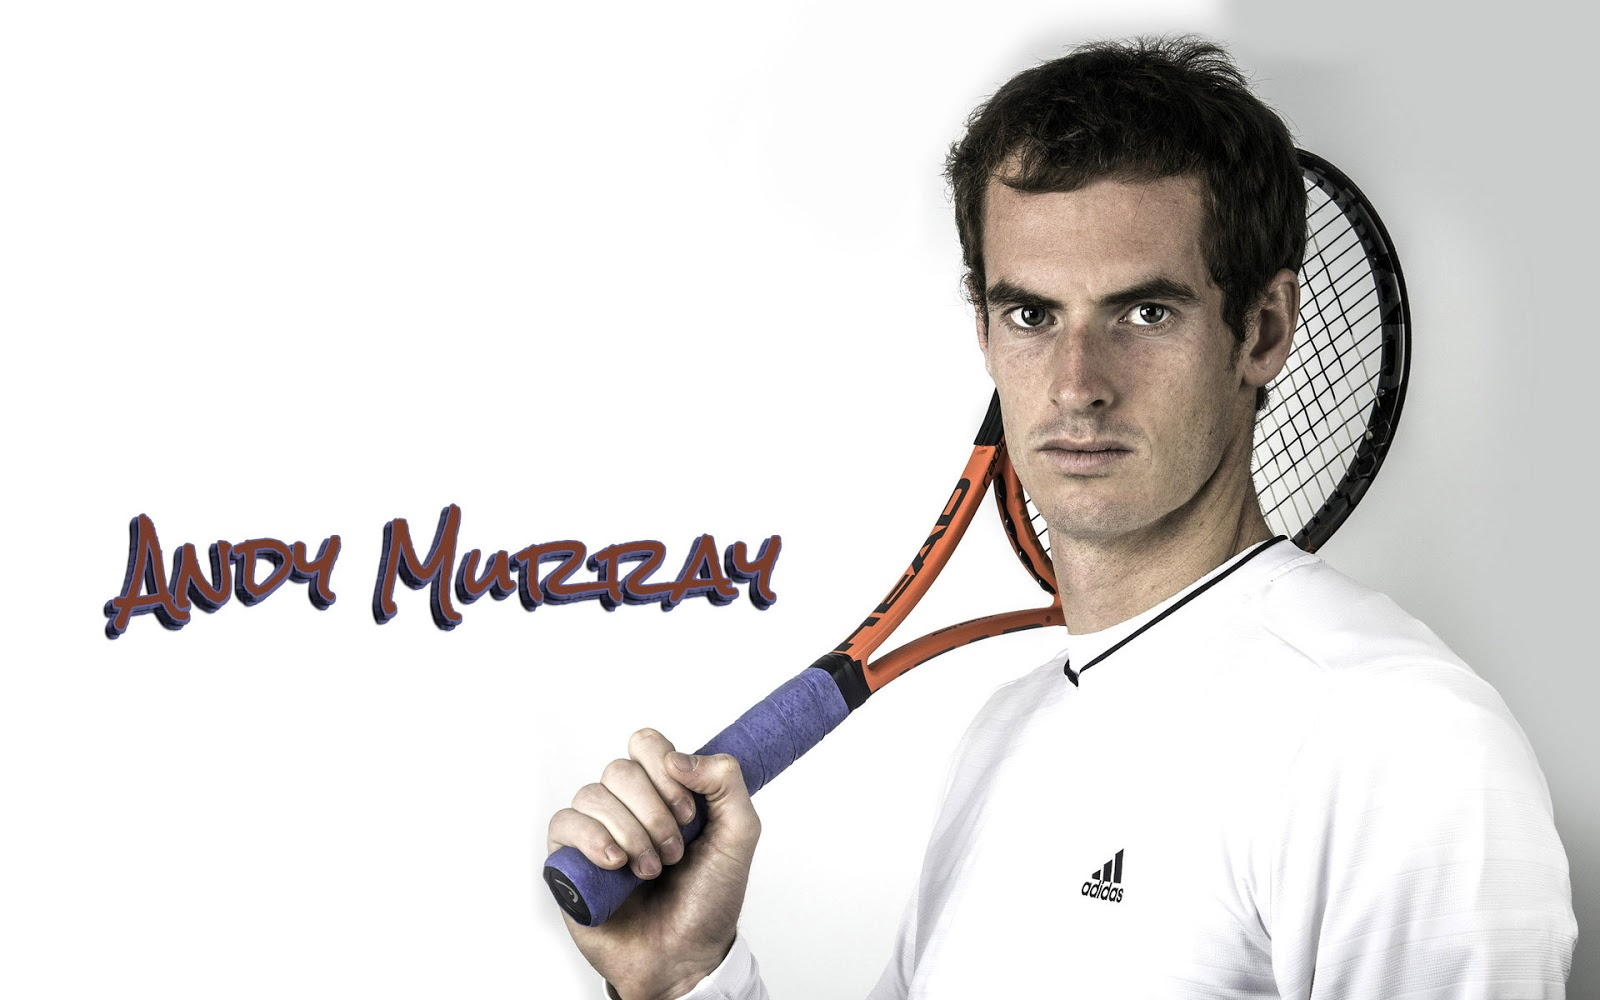 Andy murray wallpapers sports wallpapers andy murray wallpaper voltagebd Image collections